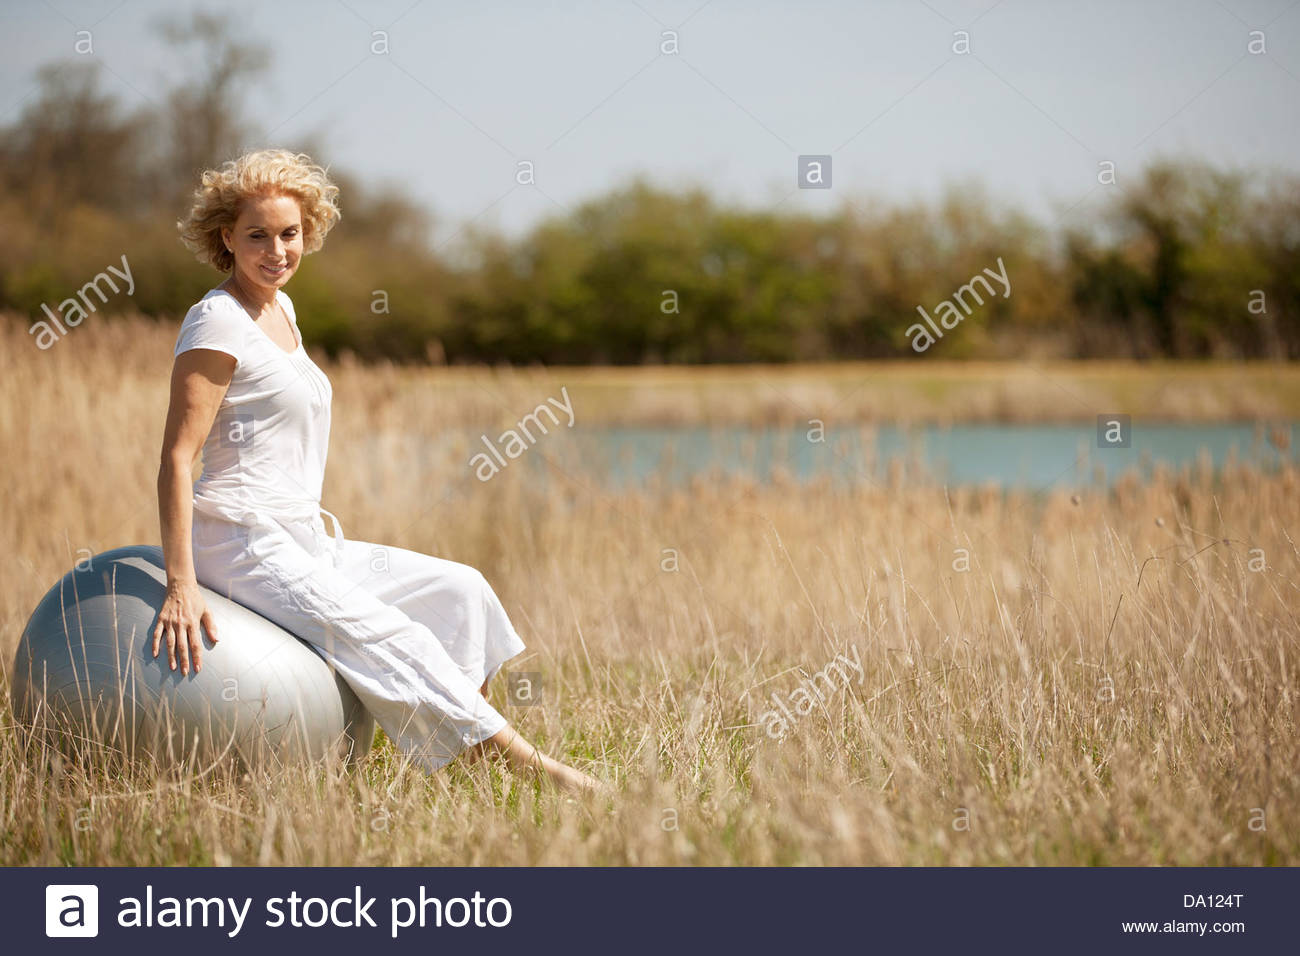 A mature woman sitting on an exercise ball - Stock Image